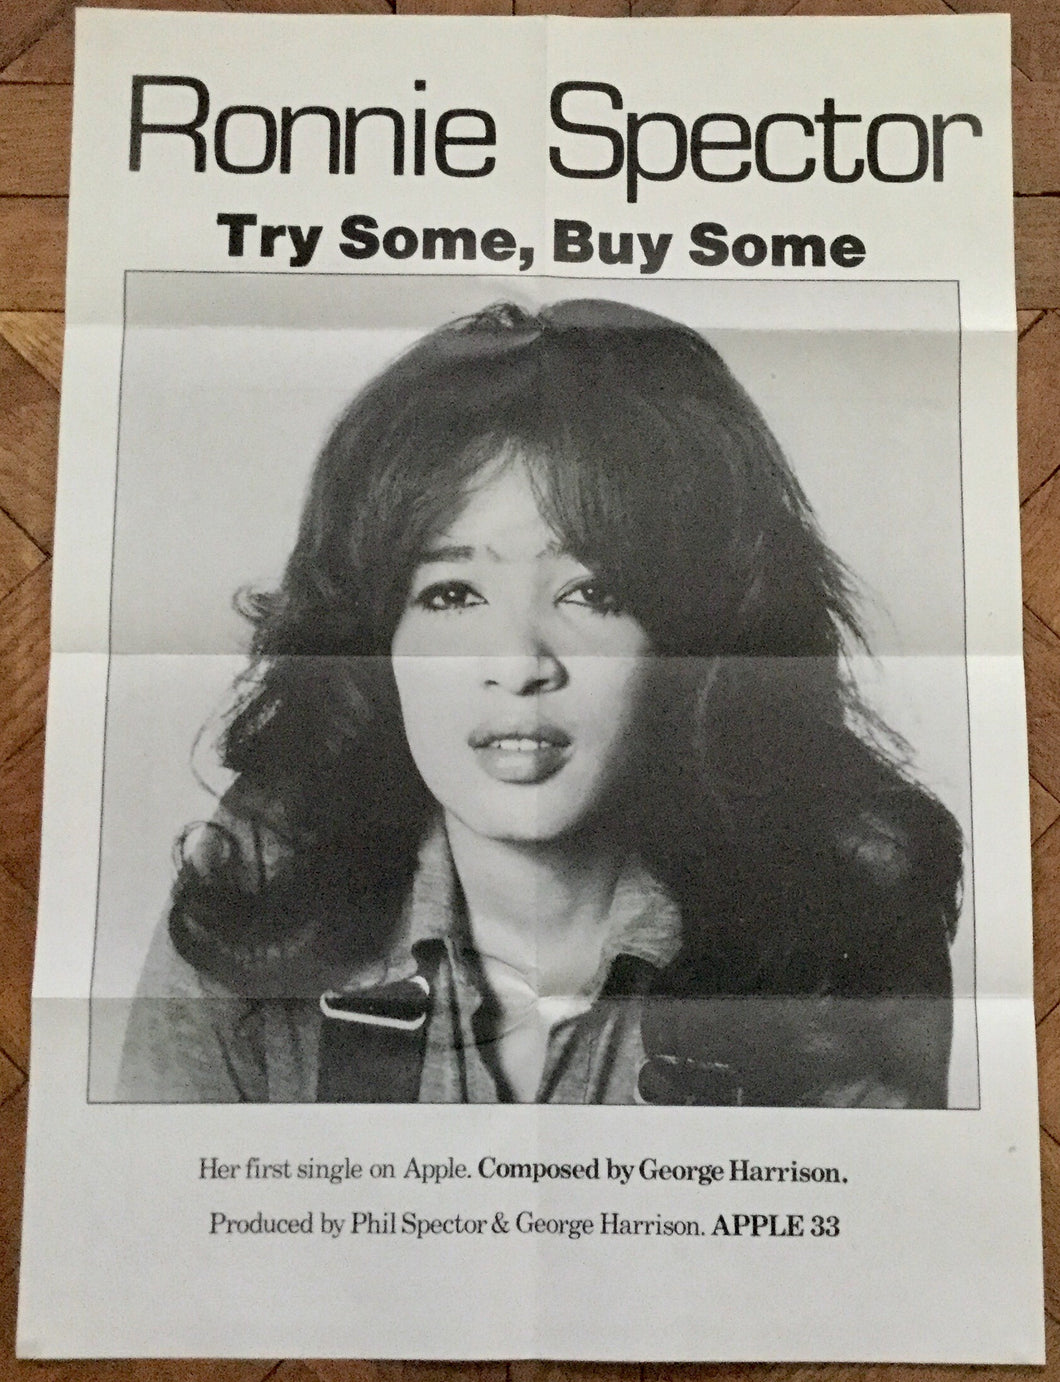 Beatles Ronnie Spector Try Some Buy Some Promo Apple Records Poster UK 1971